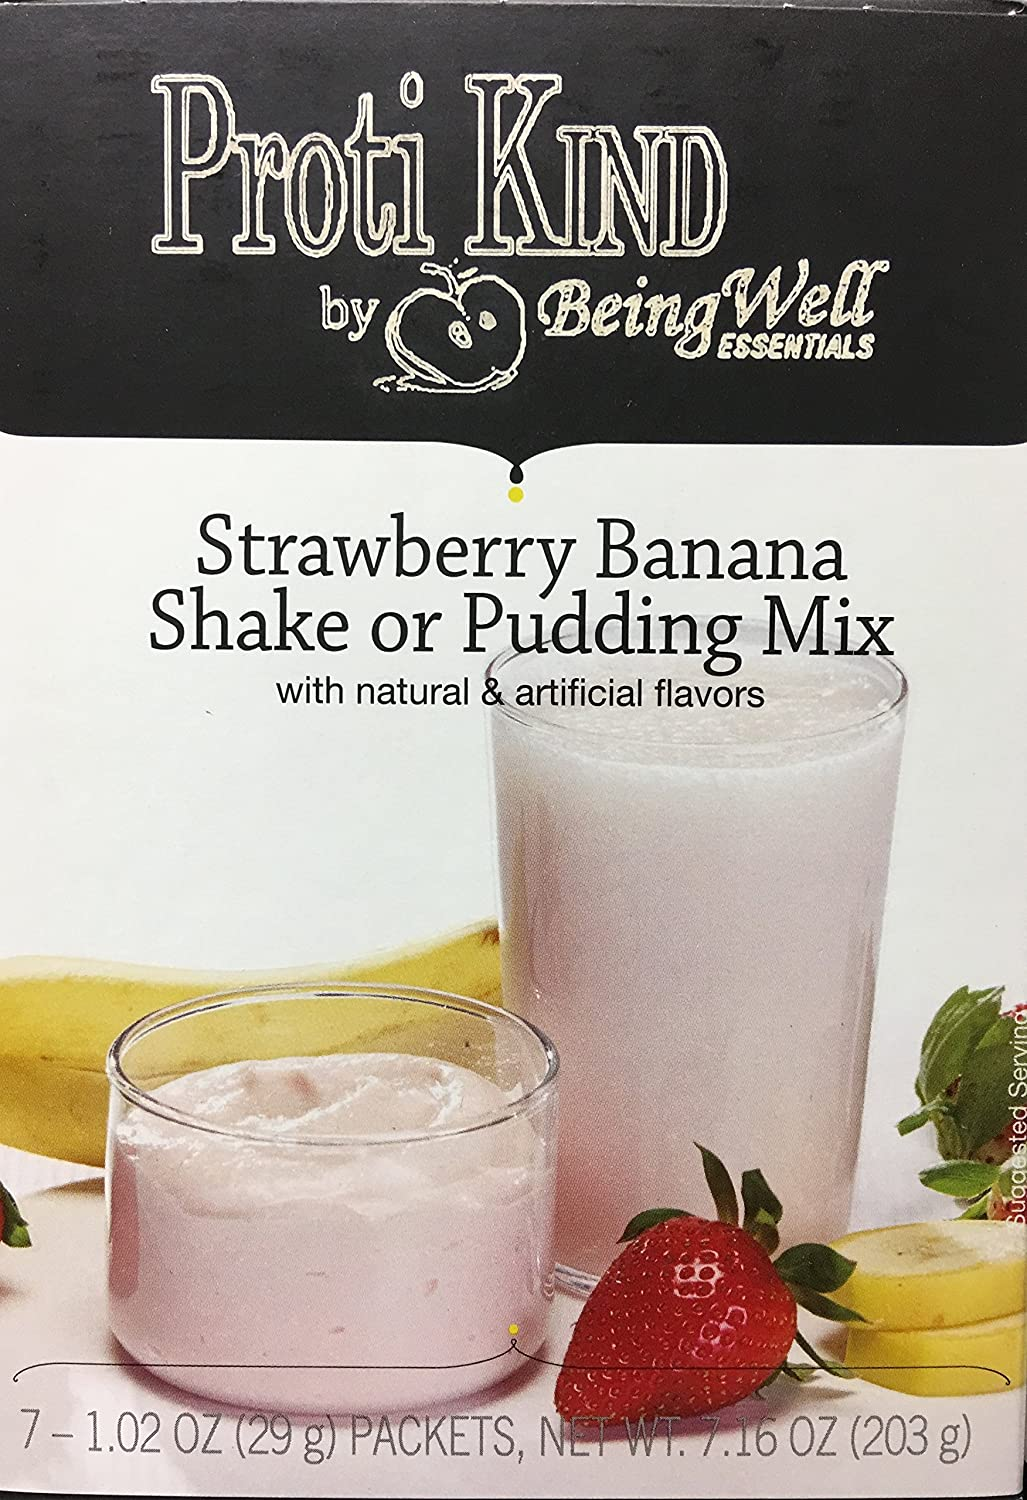 Amazon.com: Proti Kind High Protein Diet Shake & Pudding - Low Calorie - Low Sugar - Low Carbs (7 servings) (Lemon Raspberry): Health & Personal Care